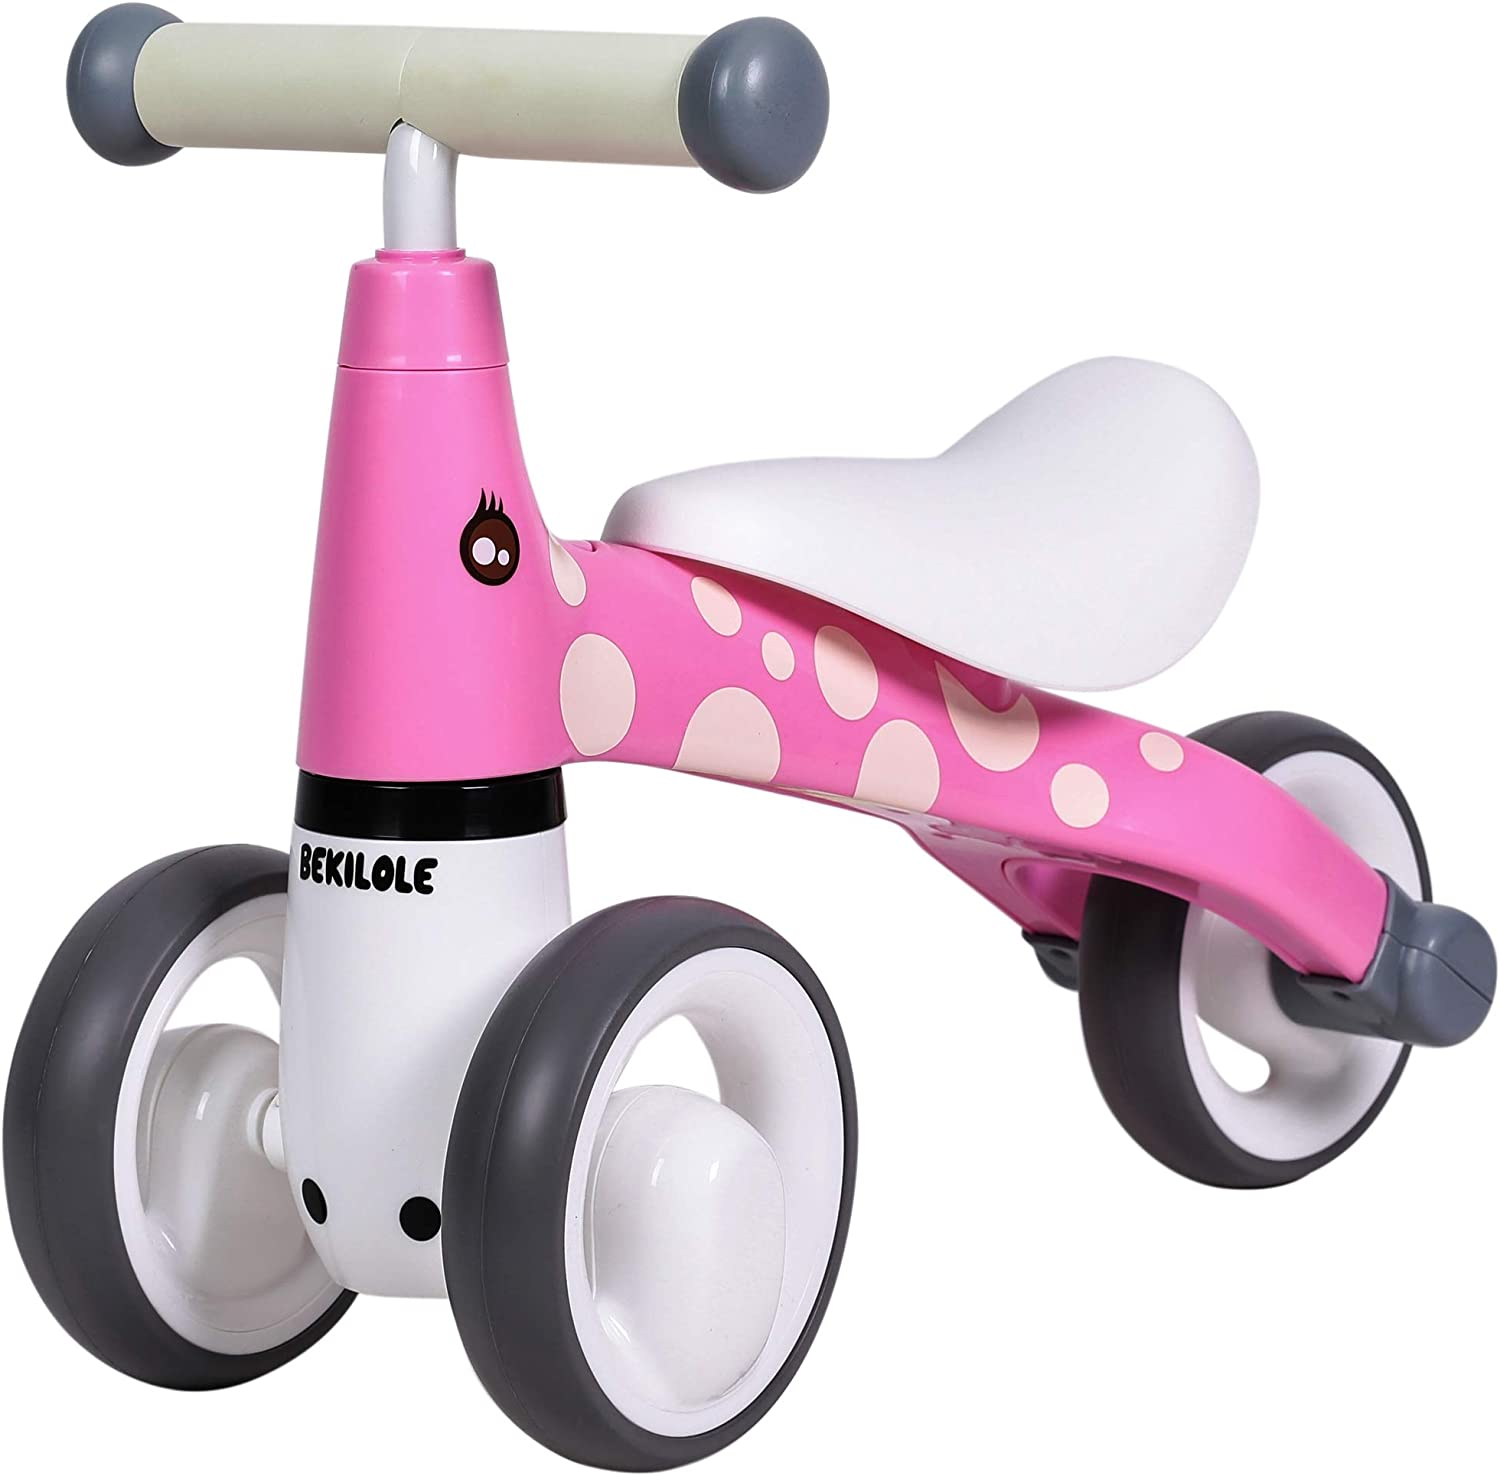 1 Year Old Girl Gifts Fun Animal Themes Ideal First Birthday Baby Balance Bike 10 24 Months